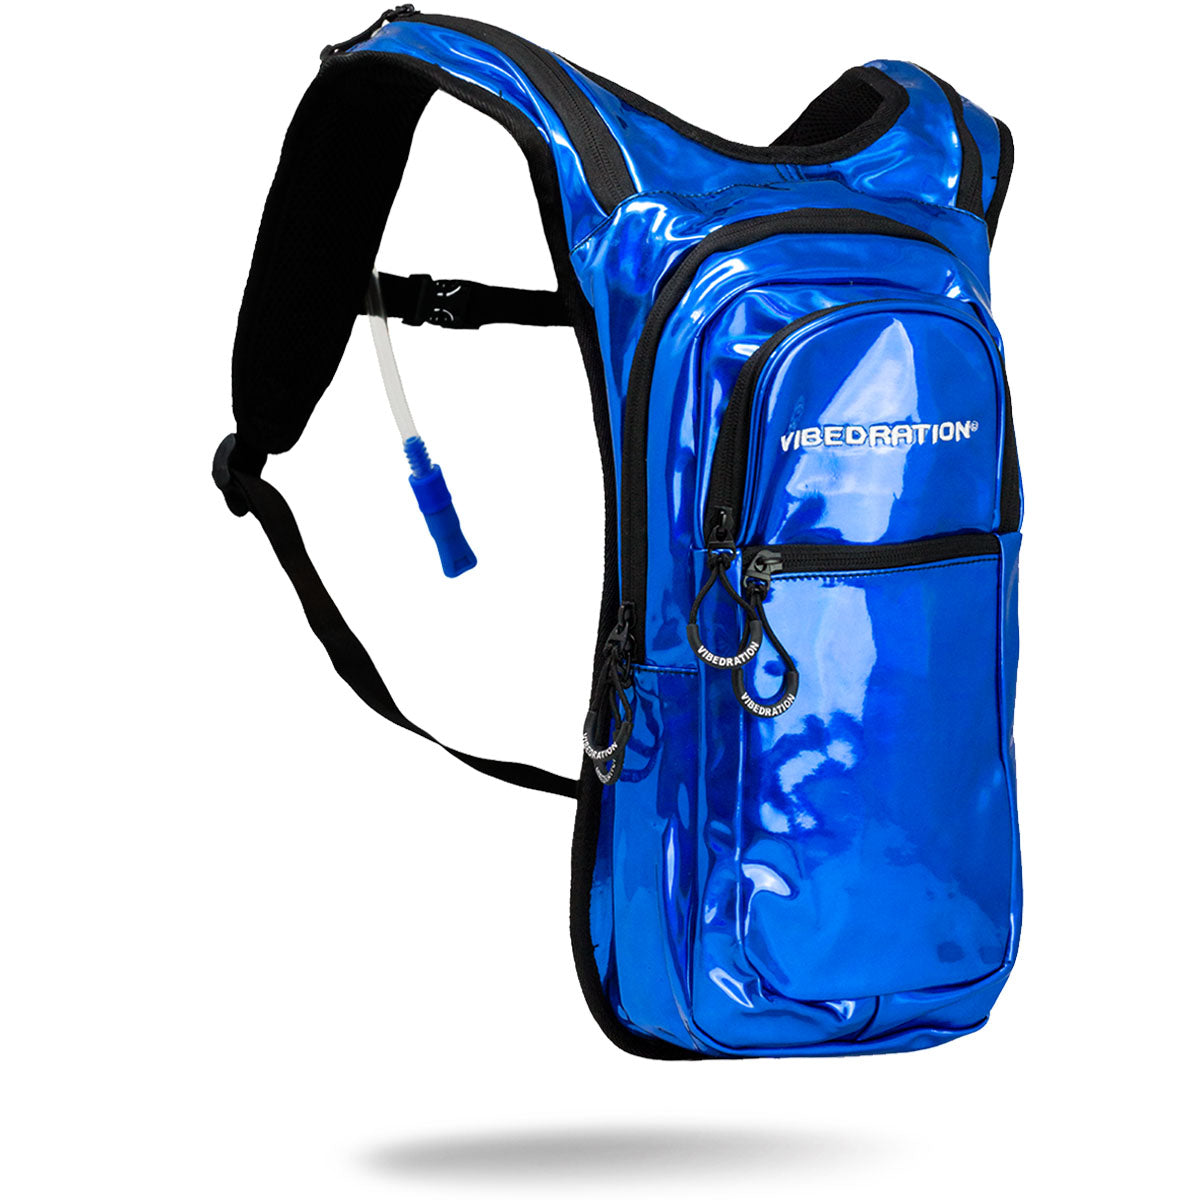 Blue holographic hydration pack with three pockets and 2 liter water capacity